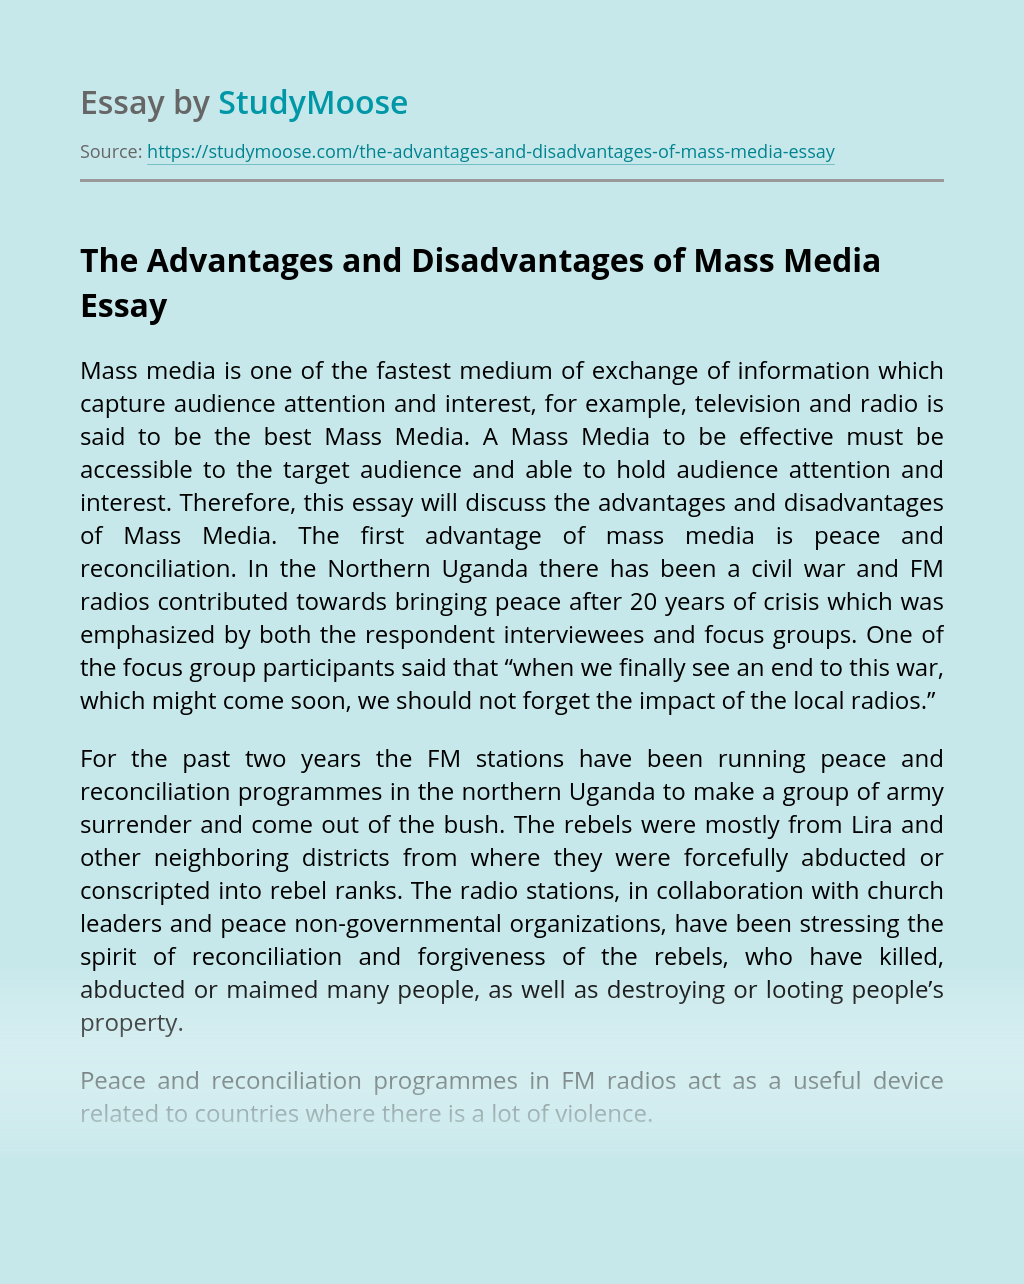 The Advantages and Disadvantages of Mass Media